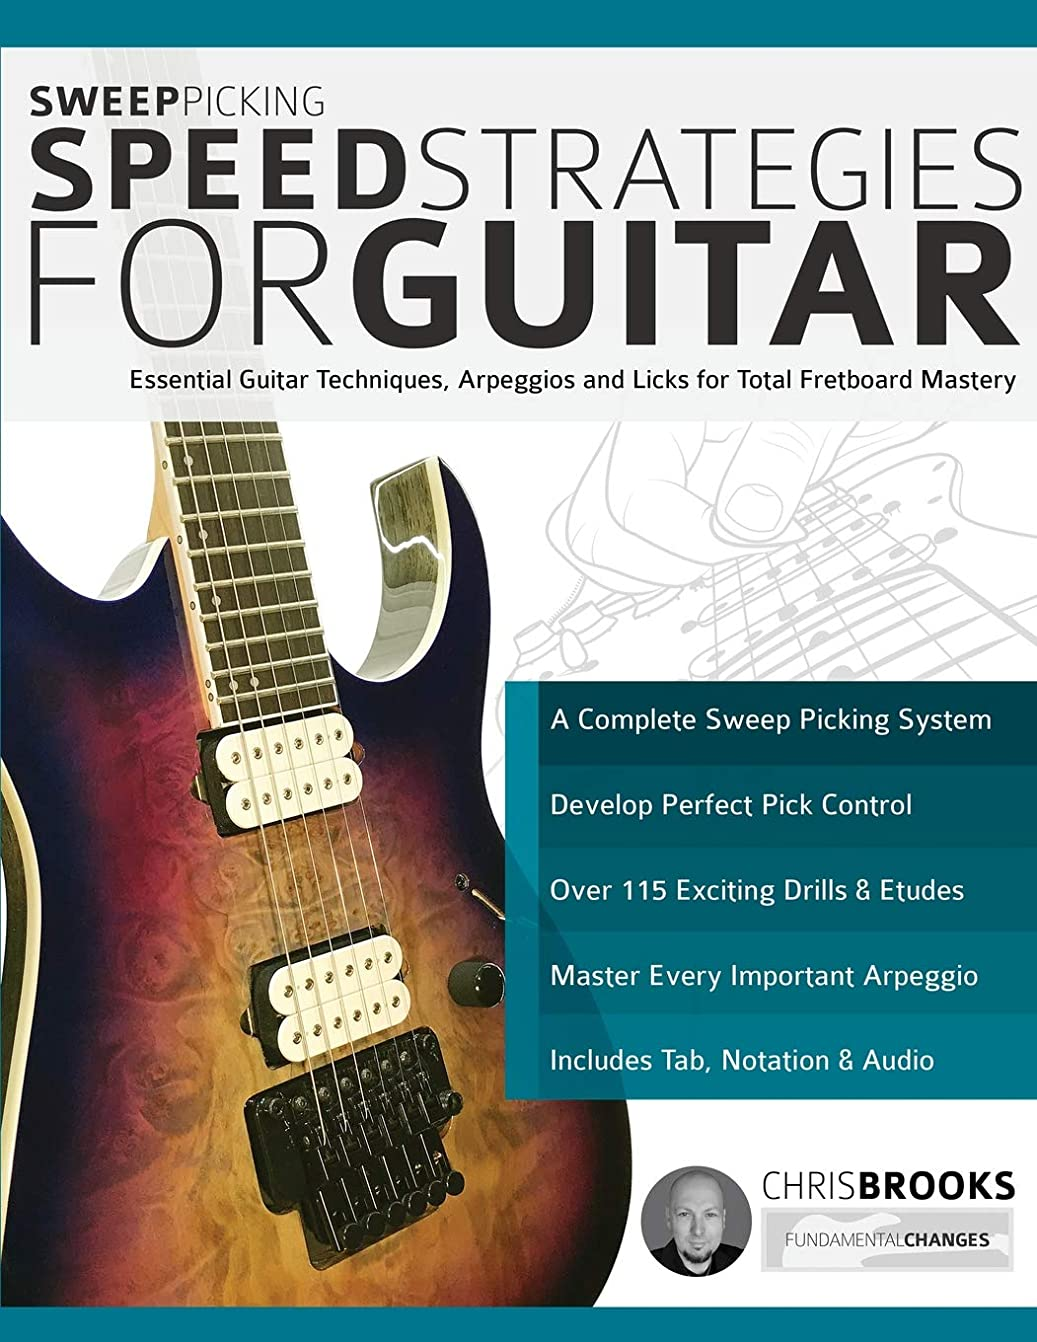 コインランドリーマイクロプロセッサ図書館Sweep Picking Speed Strategies for Guitar: Essential Guitar Techniques, Arpeggios and Licks for Total Fretboard Mastery